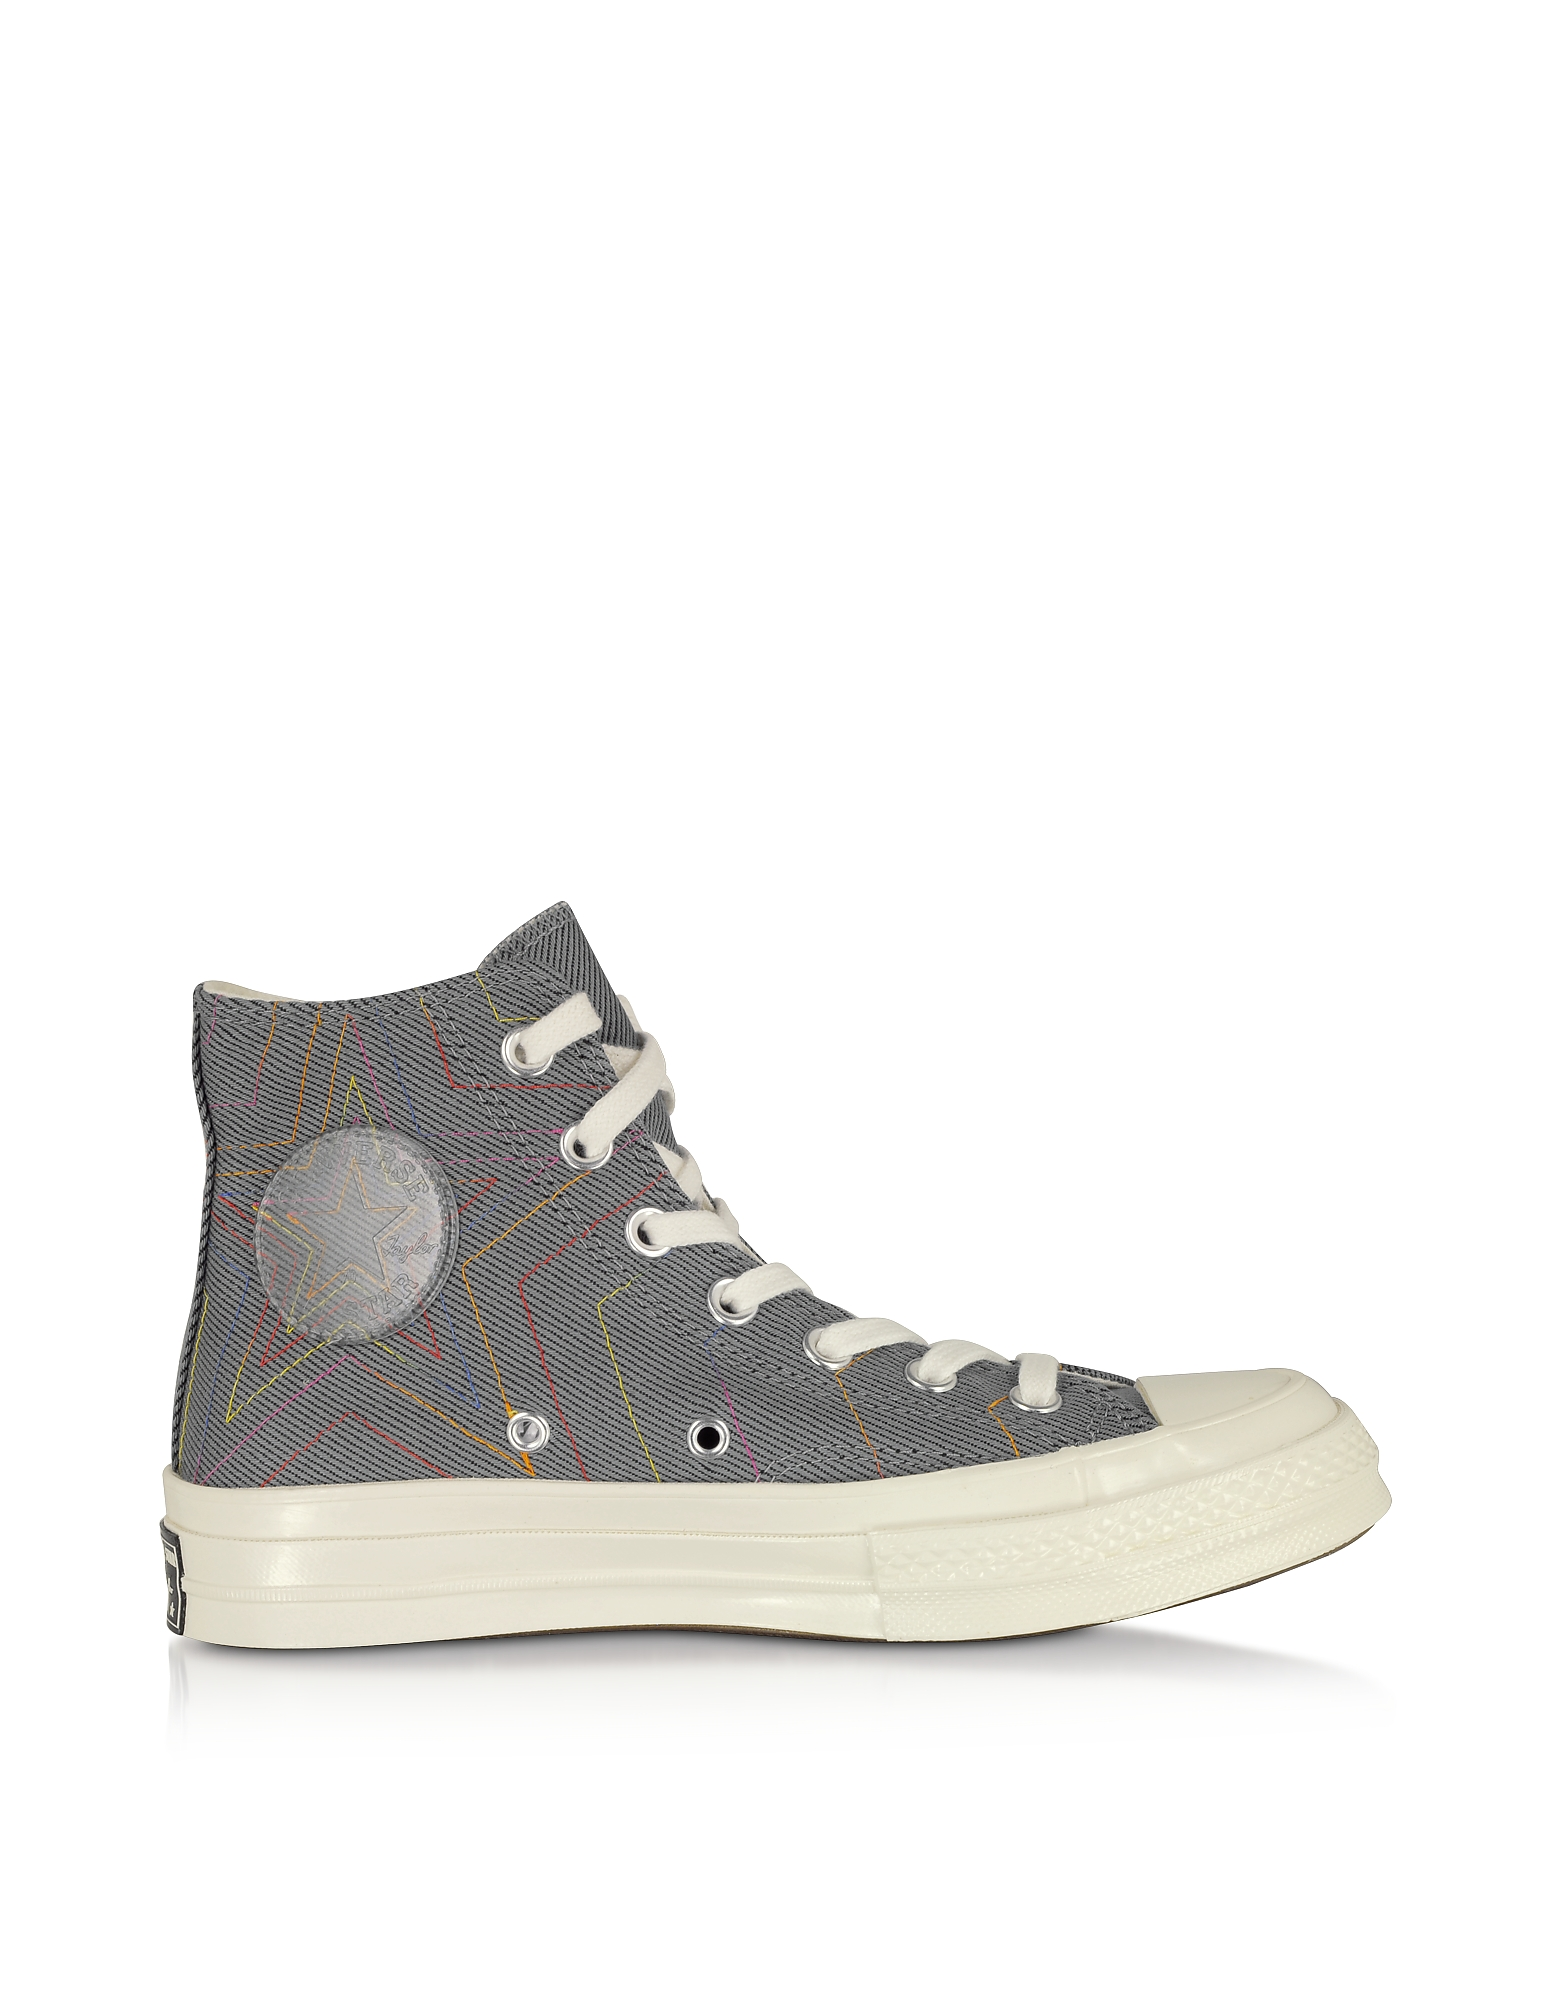 Converse Limited Edition Designer Shoes, Cool Gray Chuck 70 Exploding Star High Top